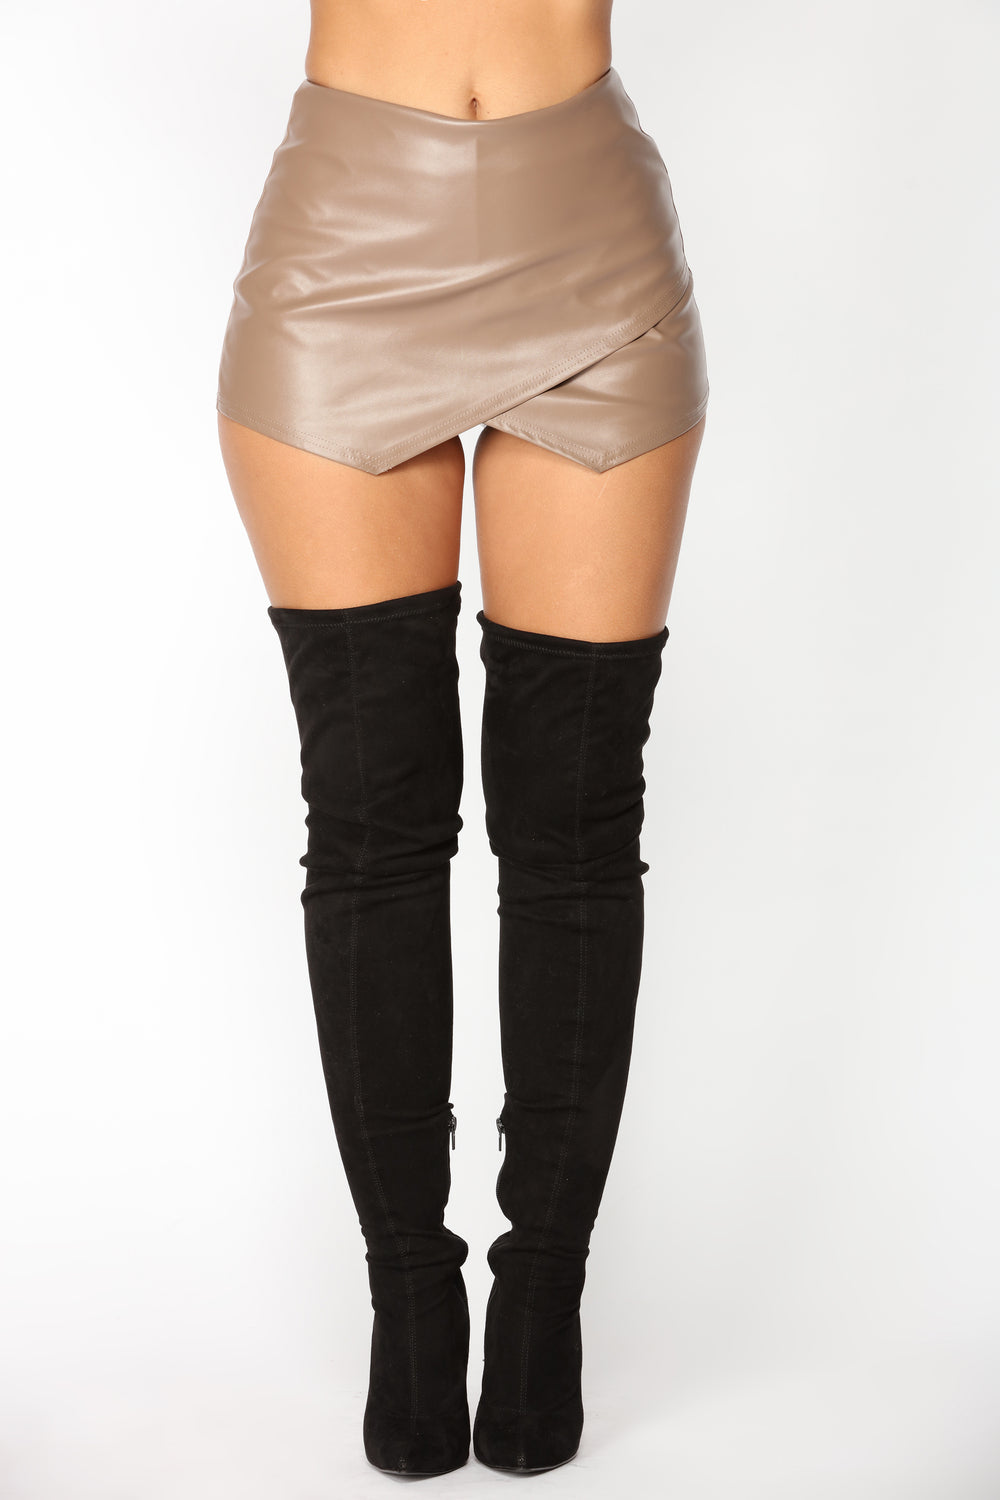 Everybody Wants Ya Skort - Mocha